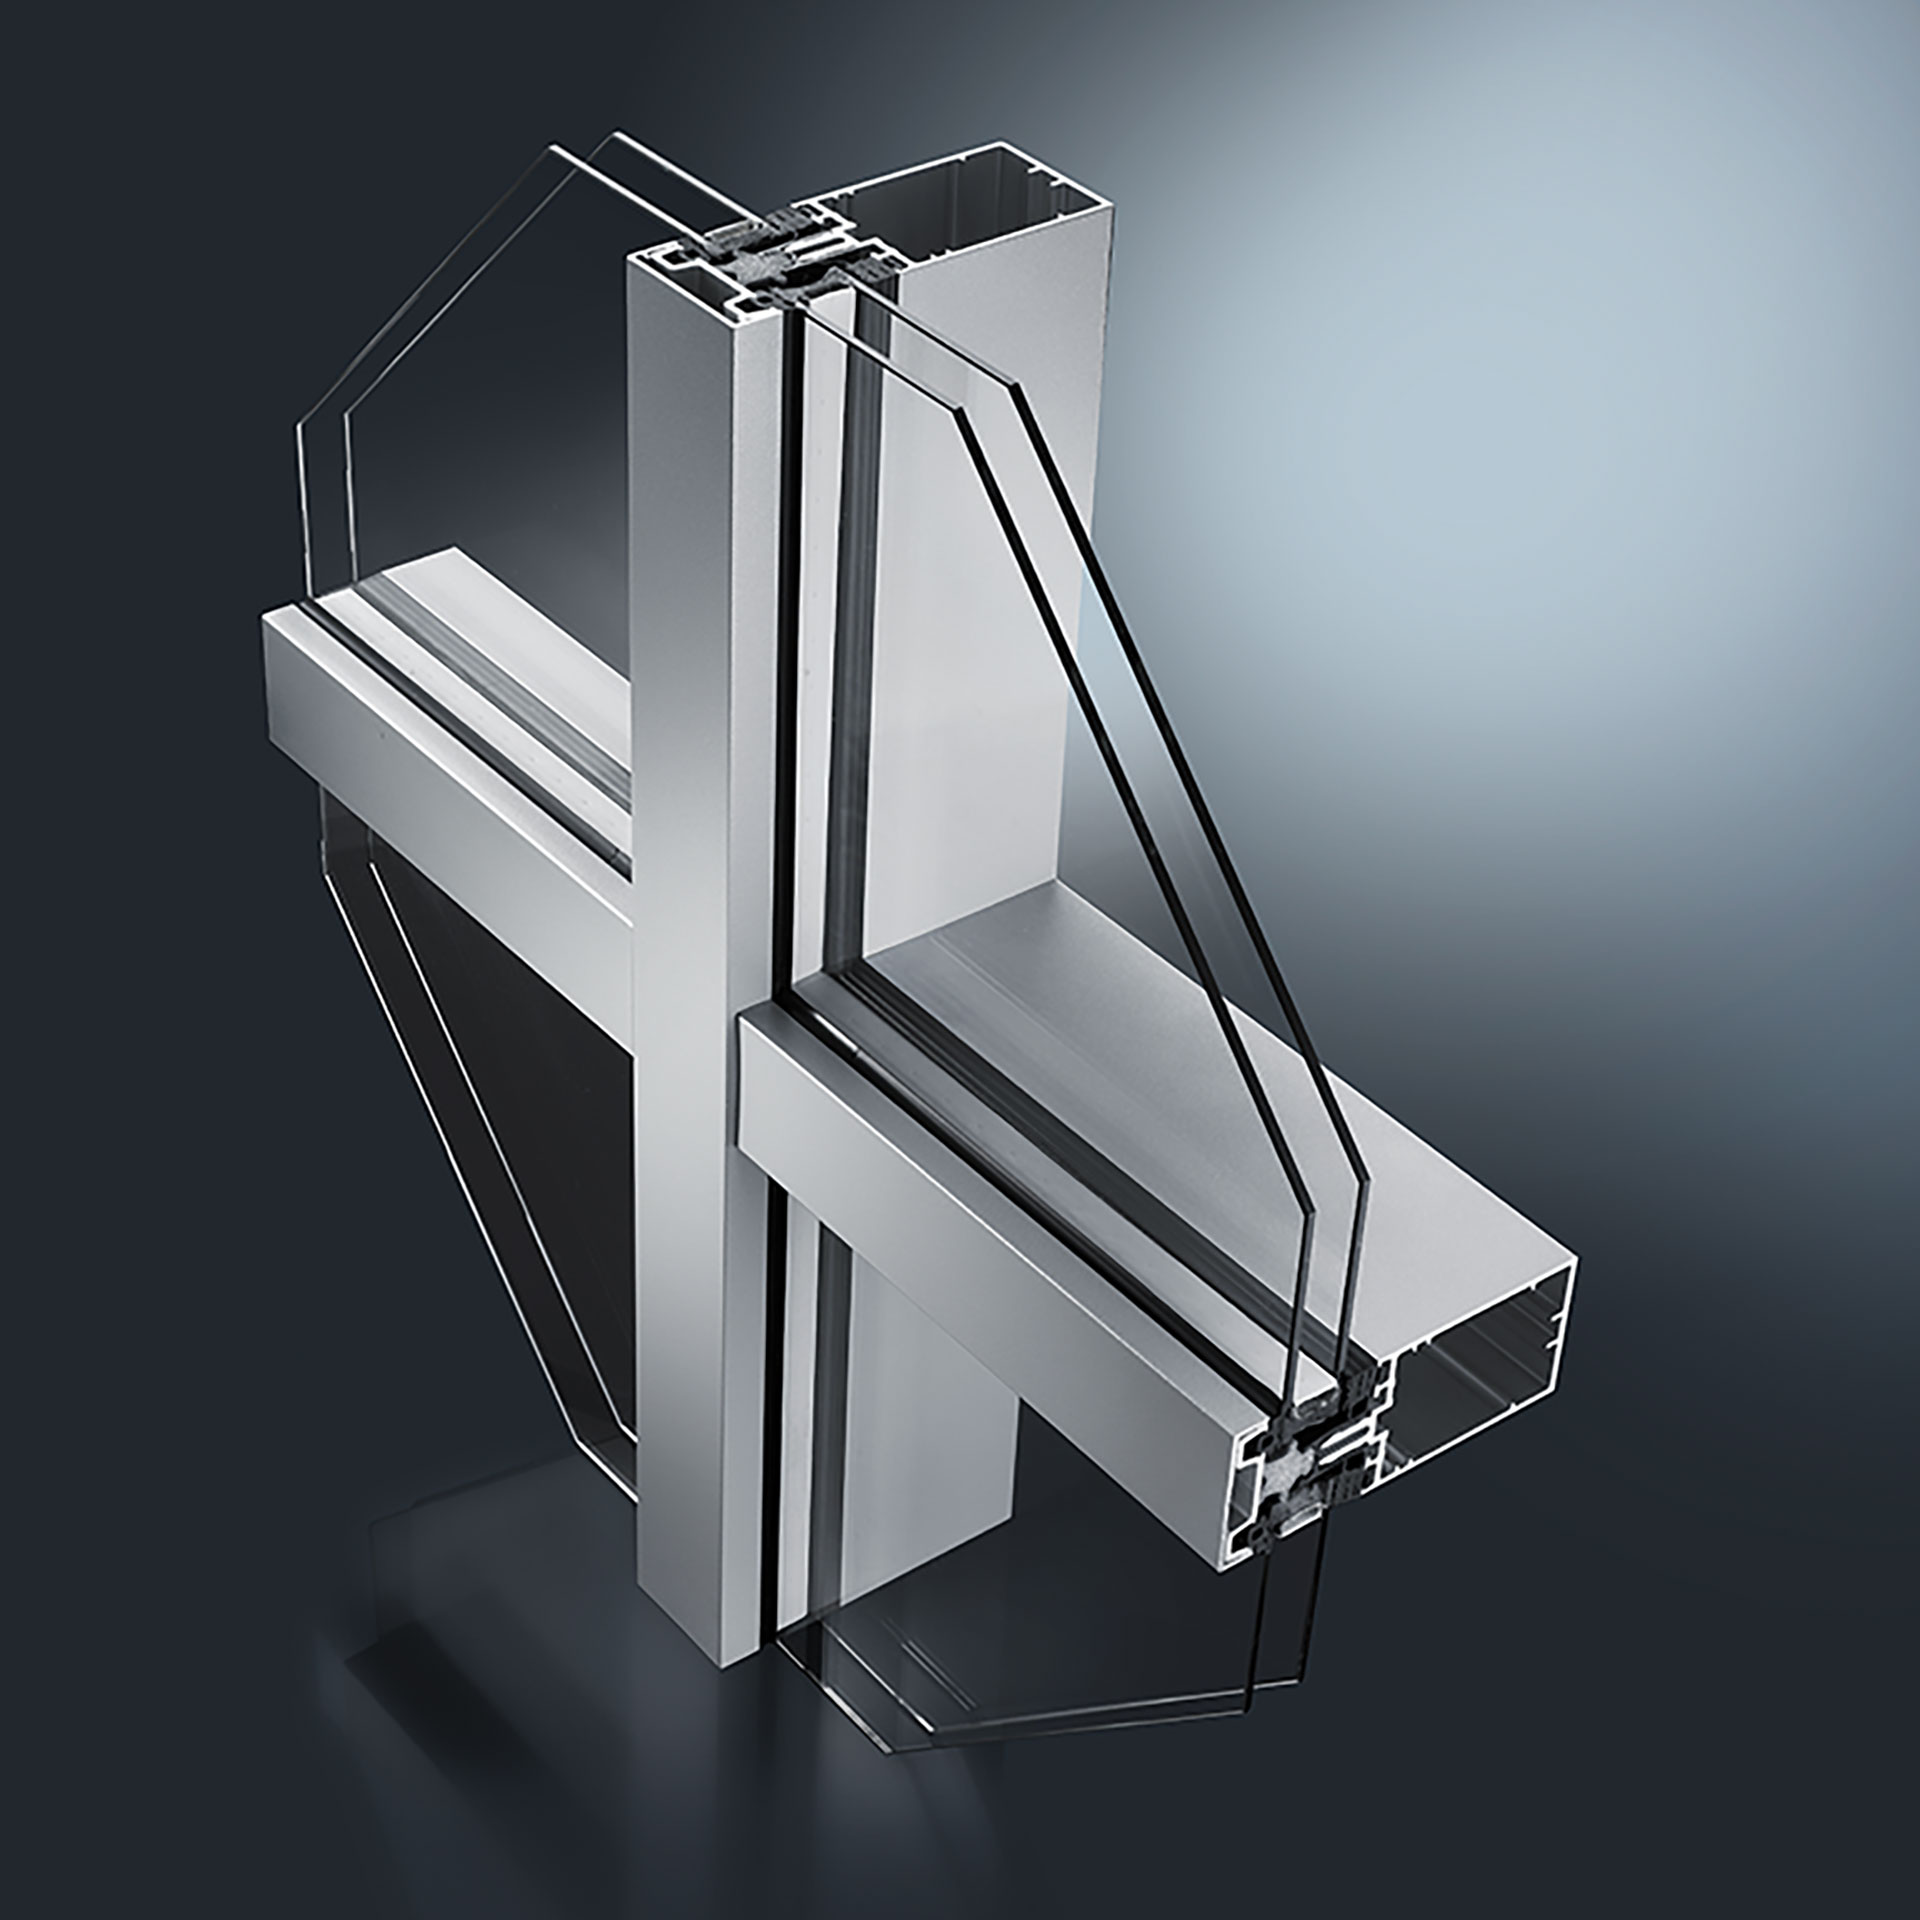 Thermal insulated aluminium curtain wall system F 50+ / F 60+. Suitable e.g. for vertical facades, pitched roof constructions, pyramids & winter gardens. Identical mullion & transom cross-sections of the façade system allow for efficient production.